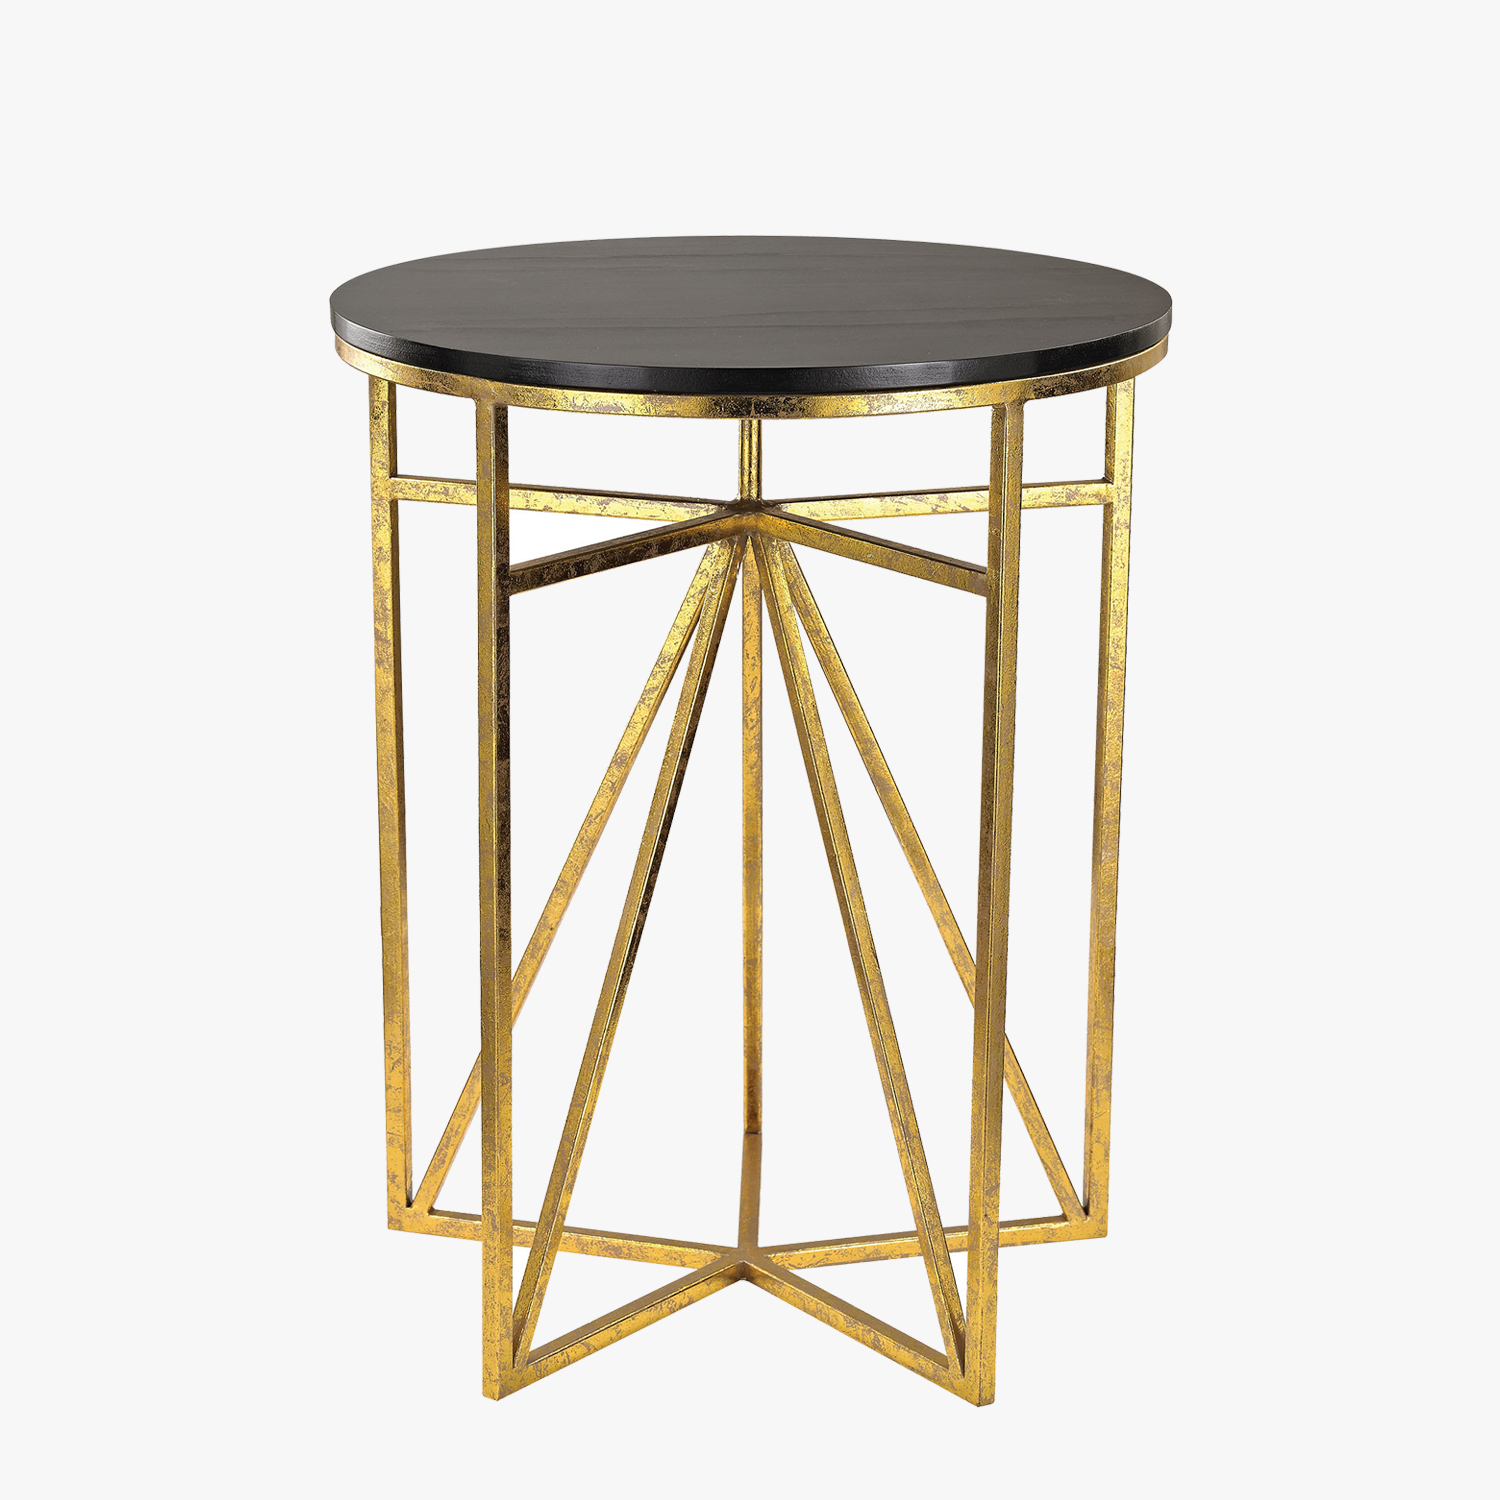 etoile antique gold accent table dear keaton end with drawer extra tall lamps vintage industrial side inch height nightstand barn door coffee round bistro chair cushions ikea sofa